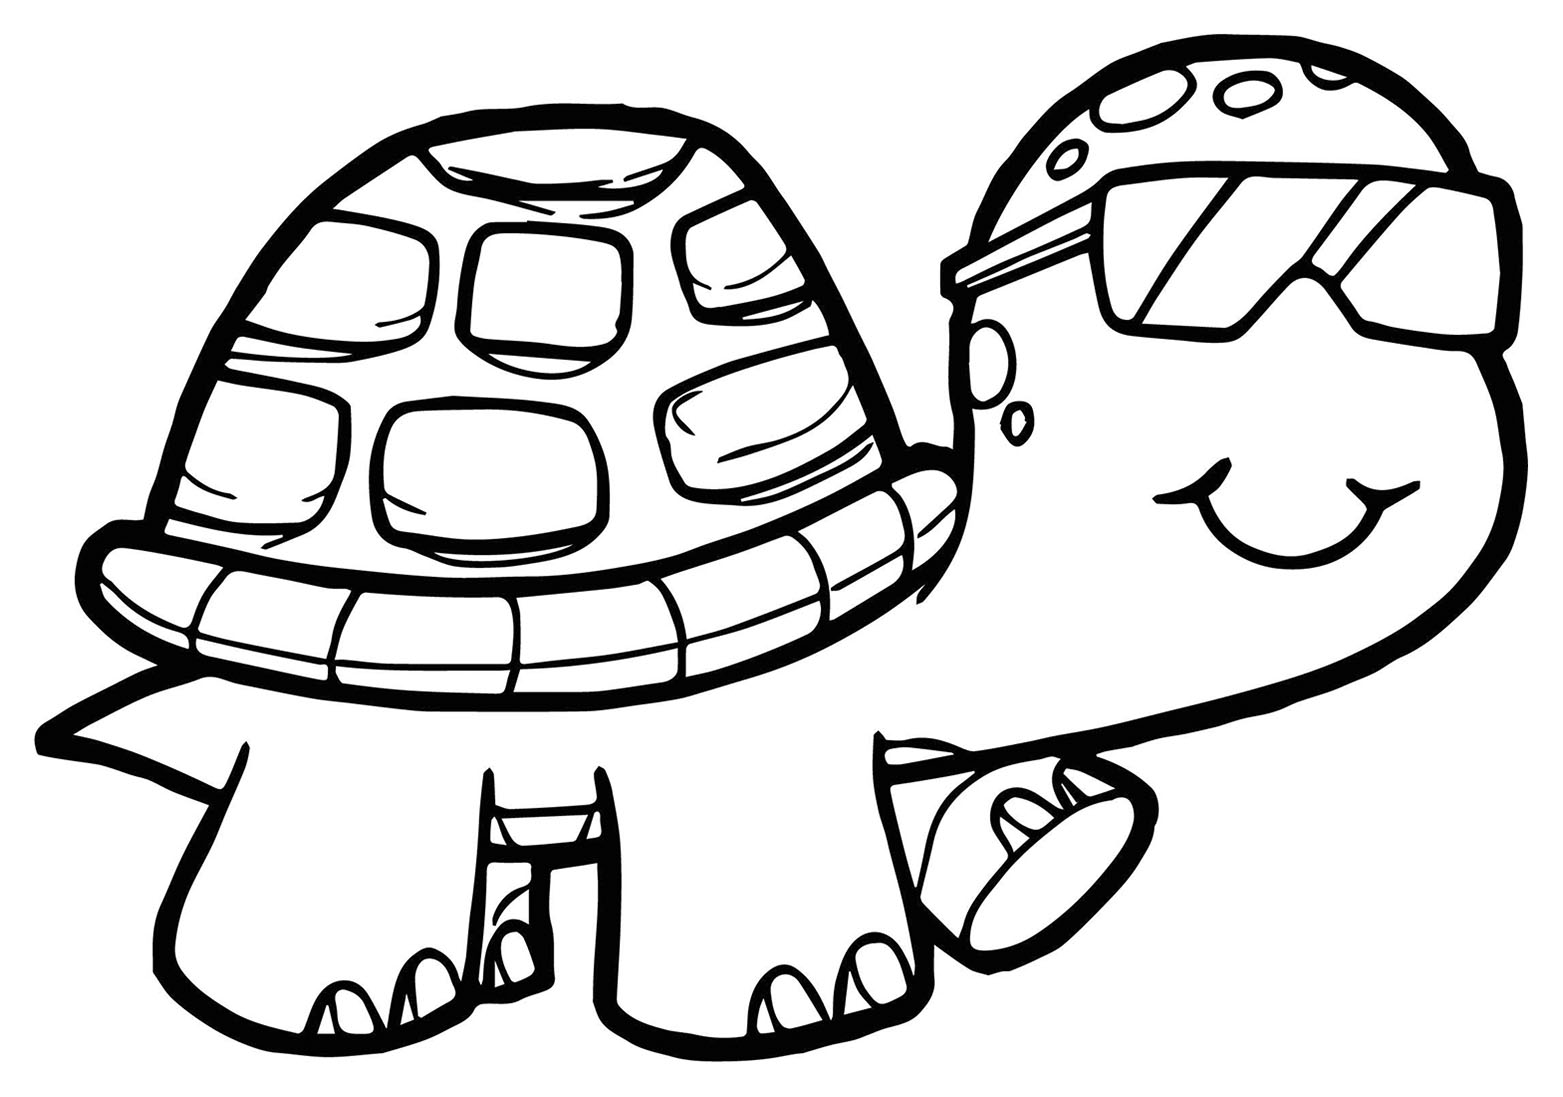 tortoise colouring pictures print download turtle coloring pages as the tortoise pictures colouring